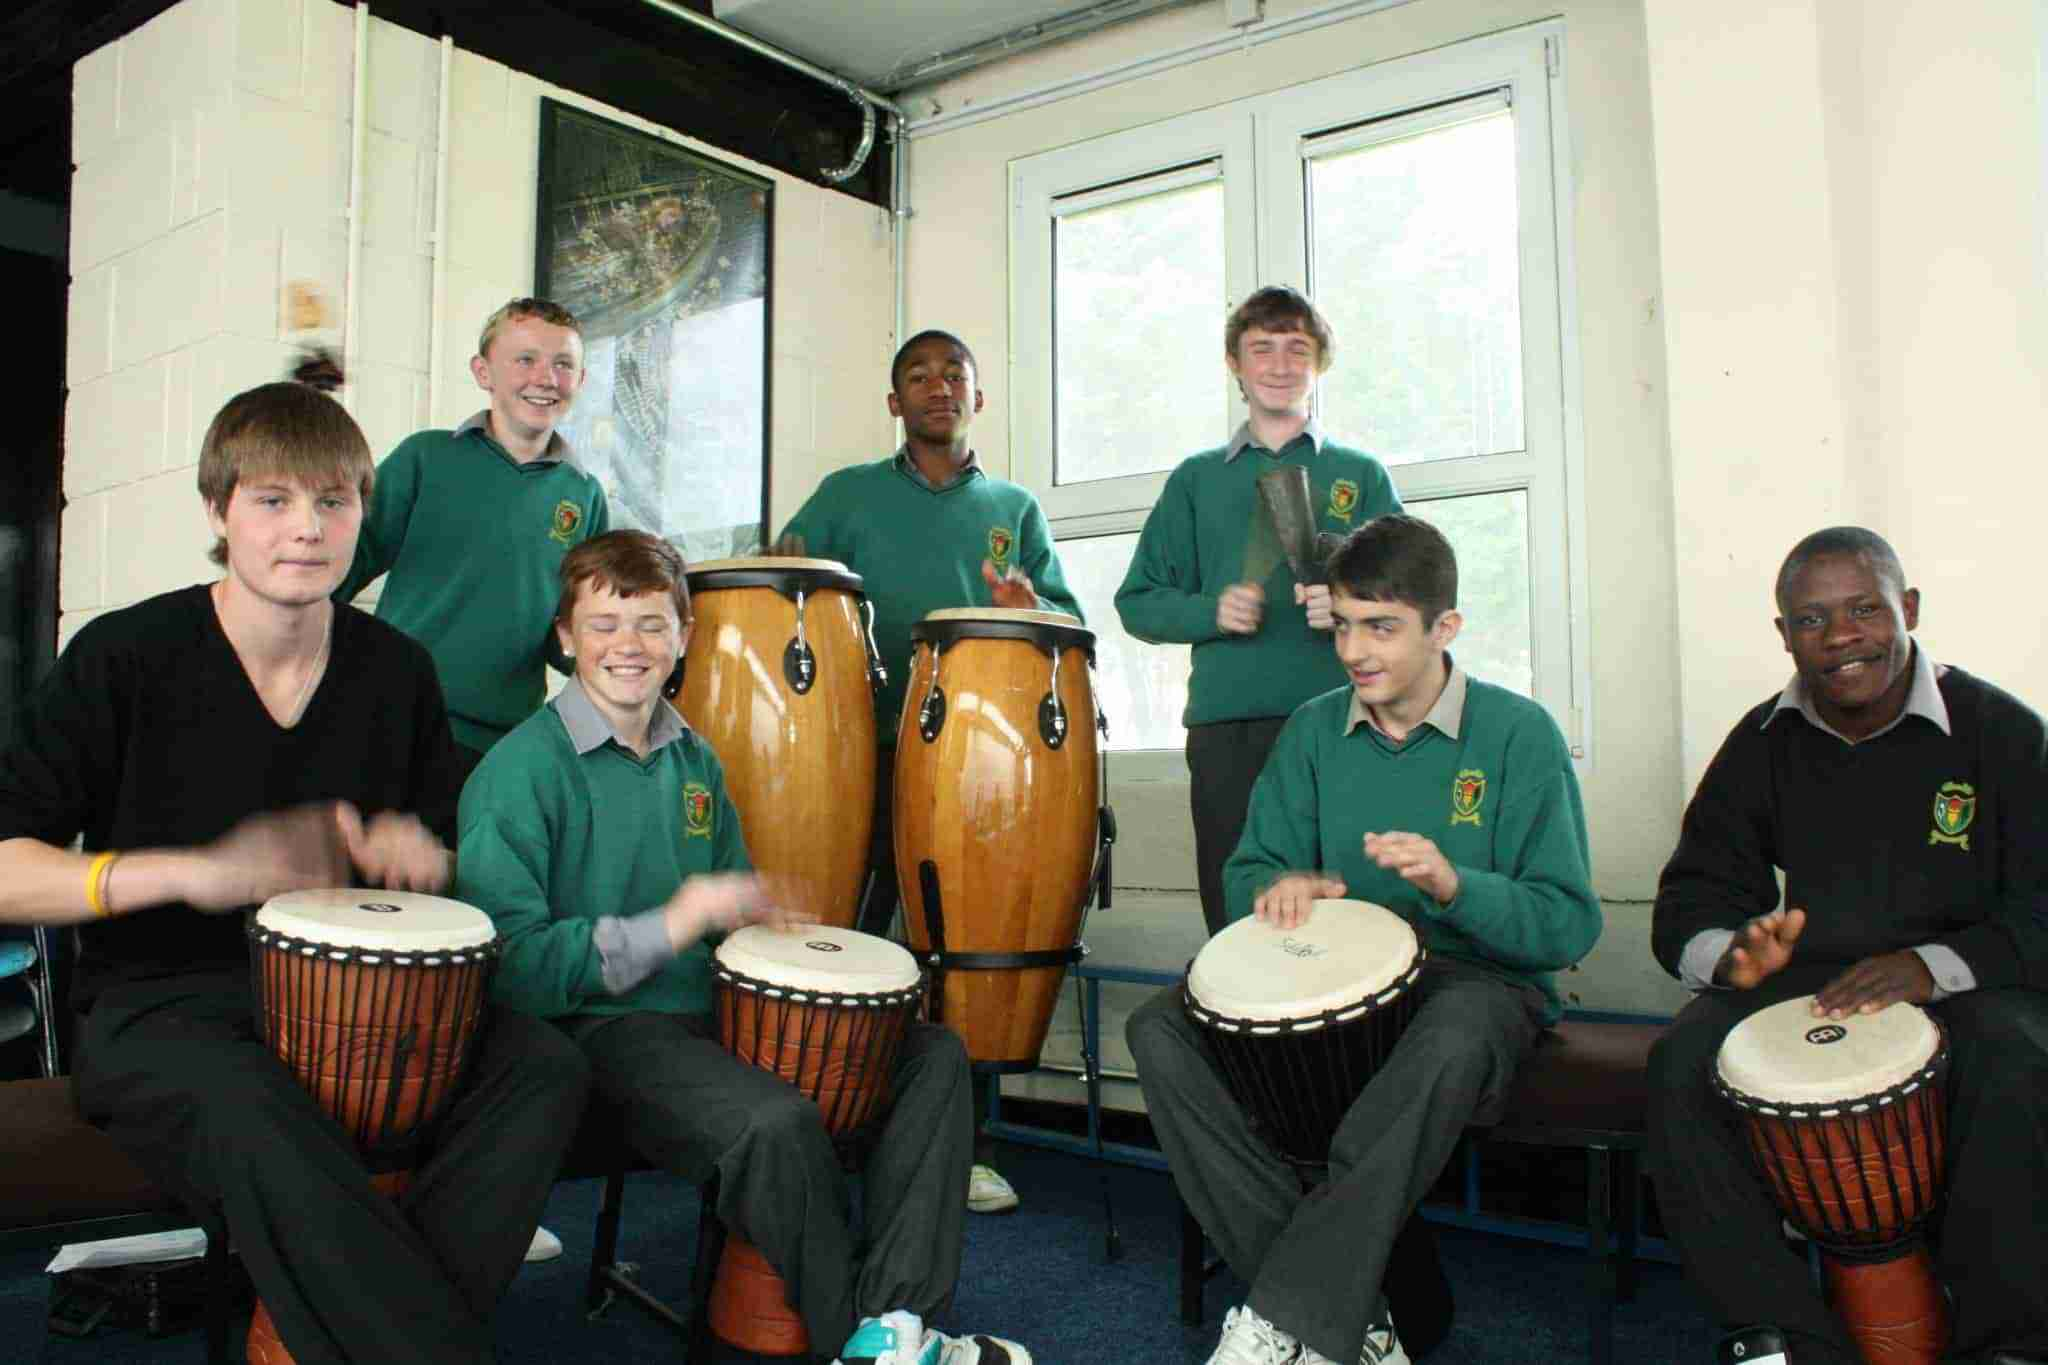 Music class at Saint Aidans Community School